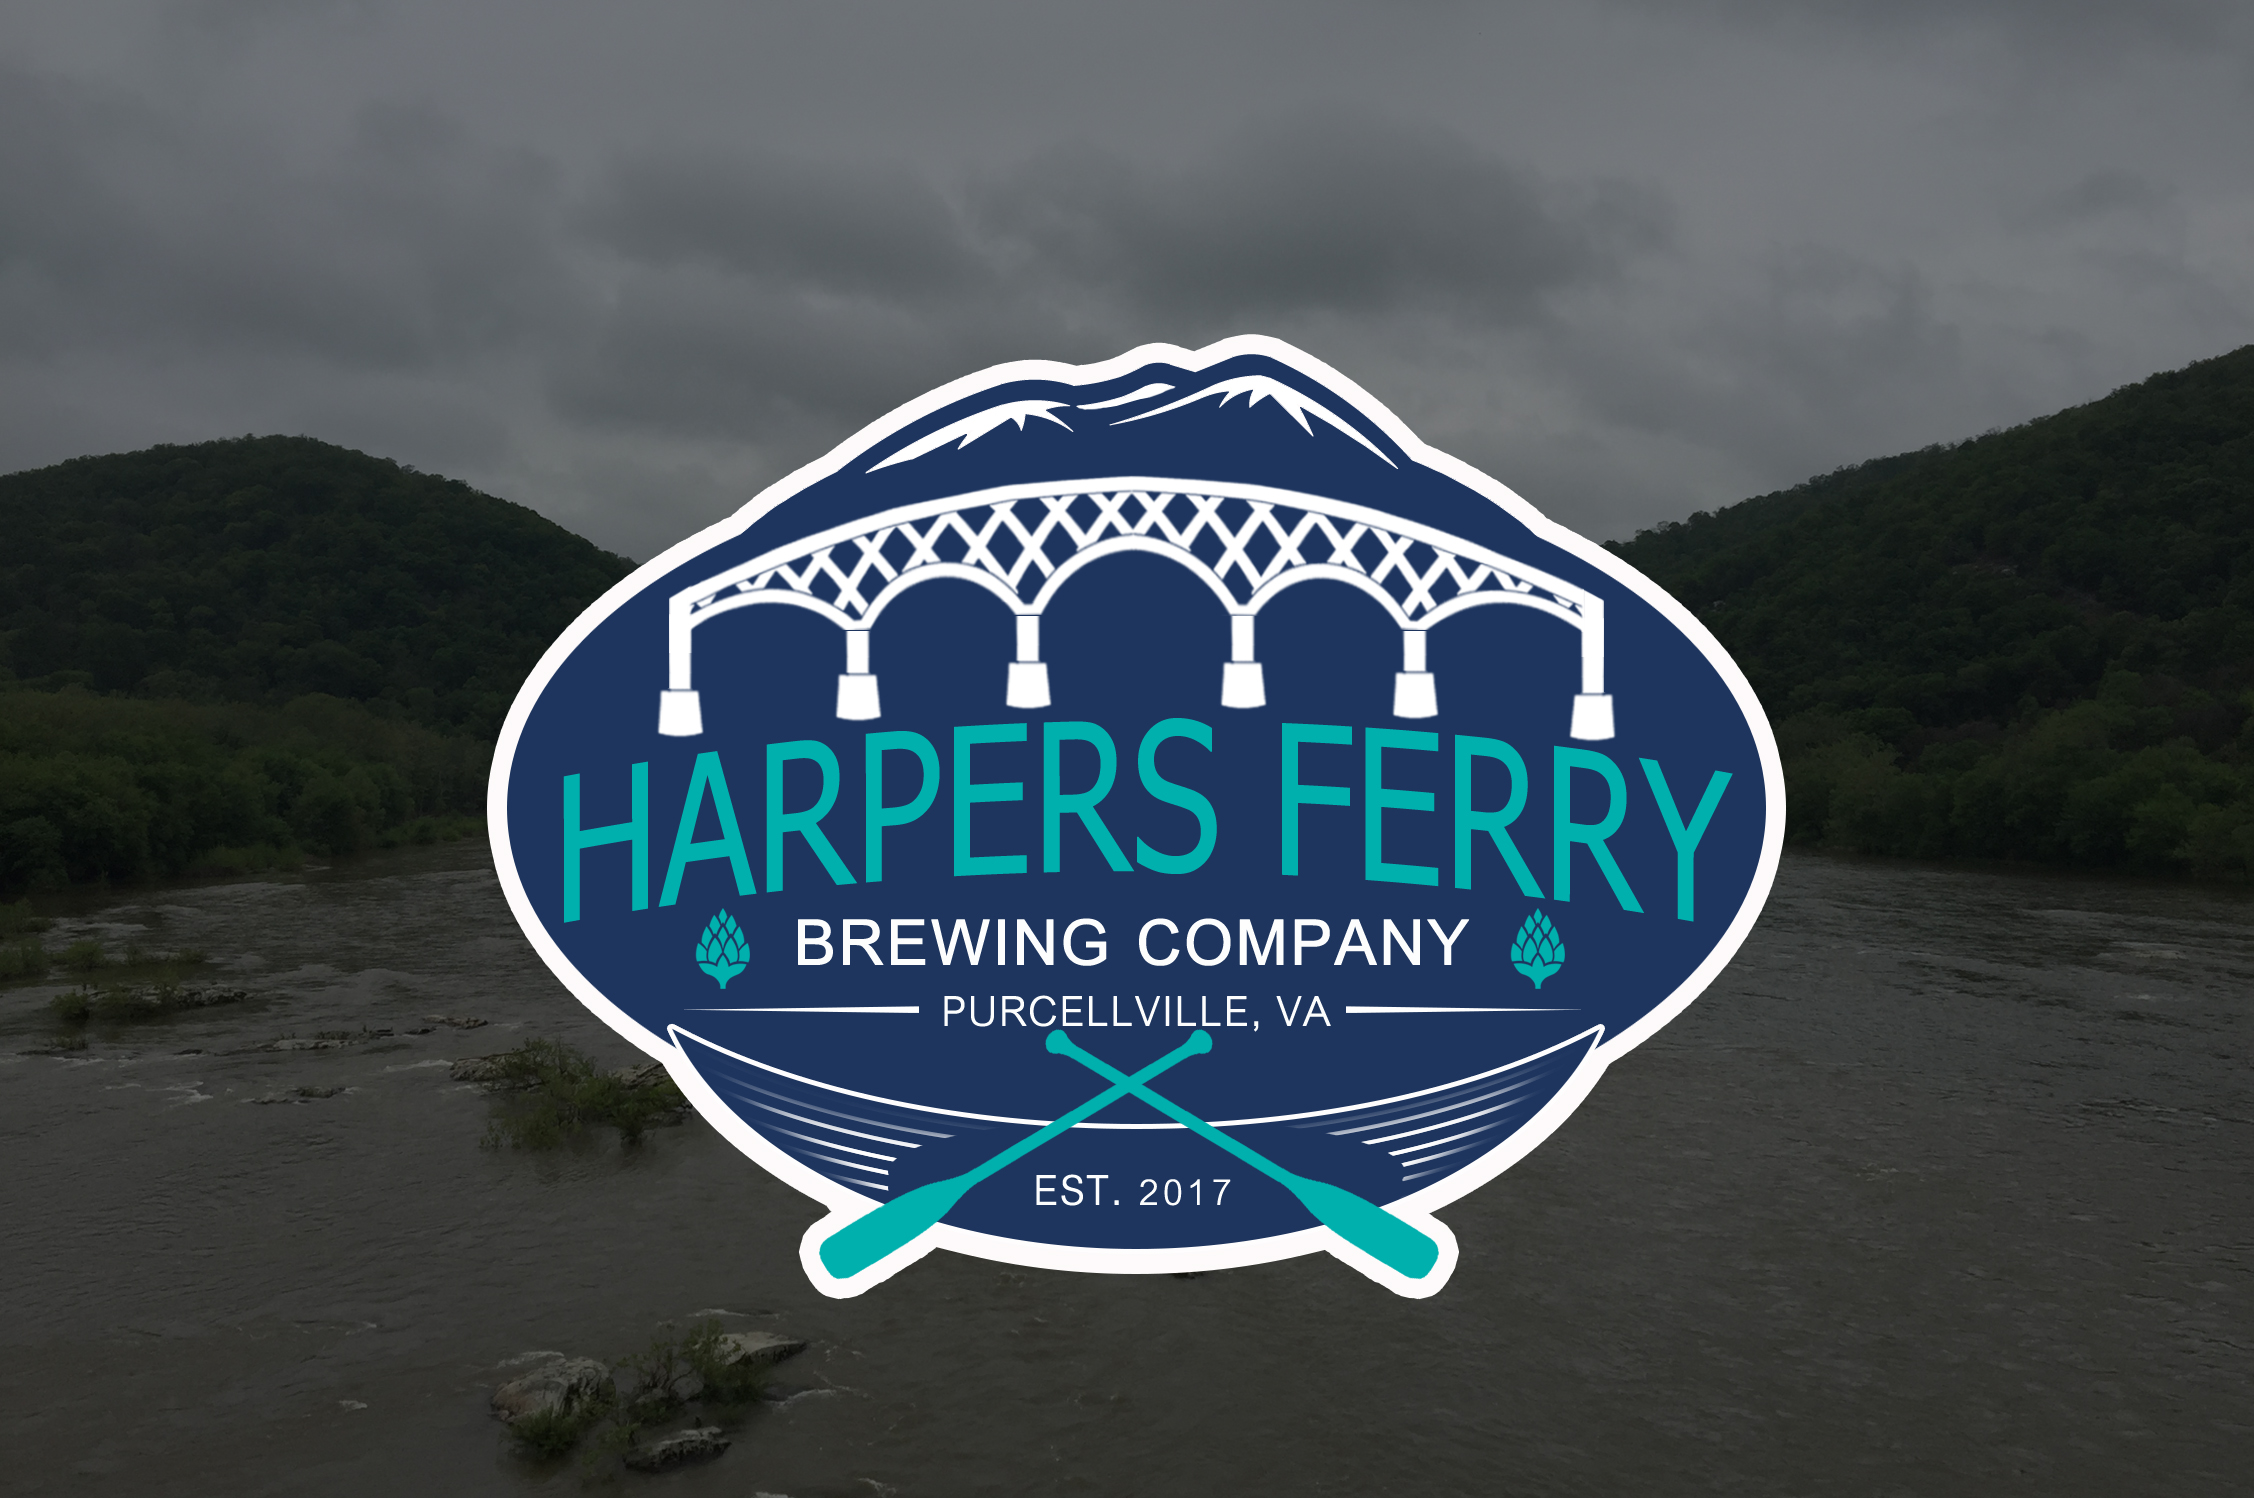 Logo Design by JSDESIGNGROUP - Entry No. 76 in the Logo Design Contest Unique Logo Design Wanted for Harpers ferry brewing company.